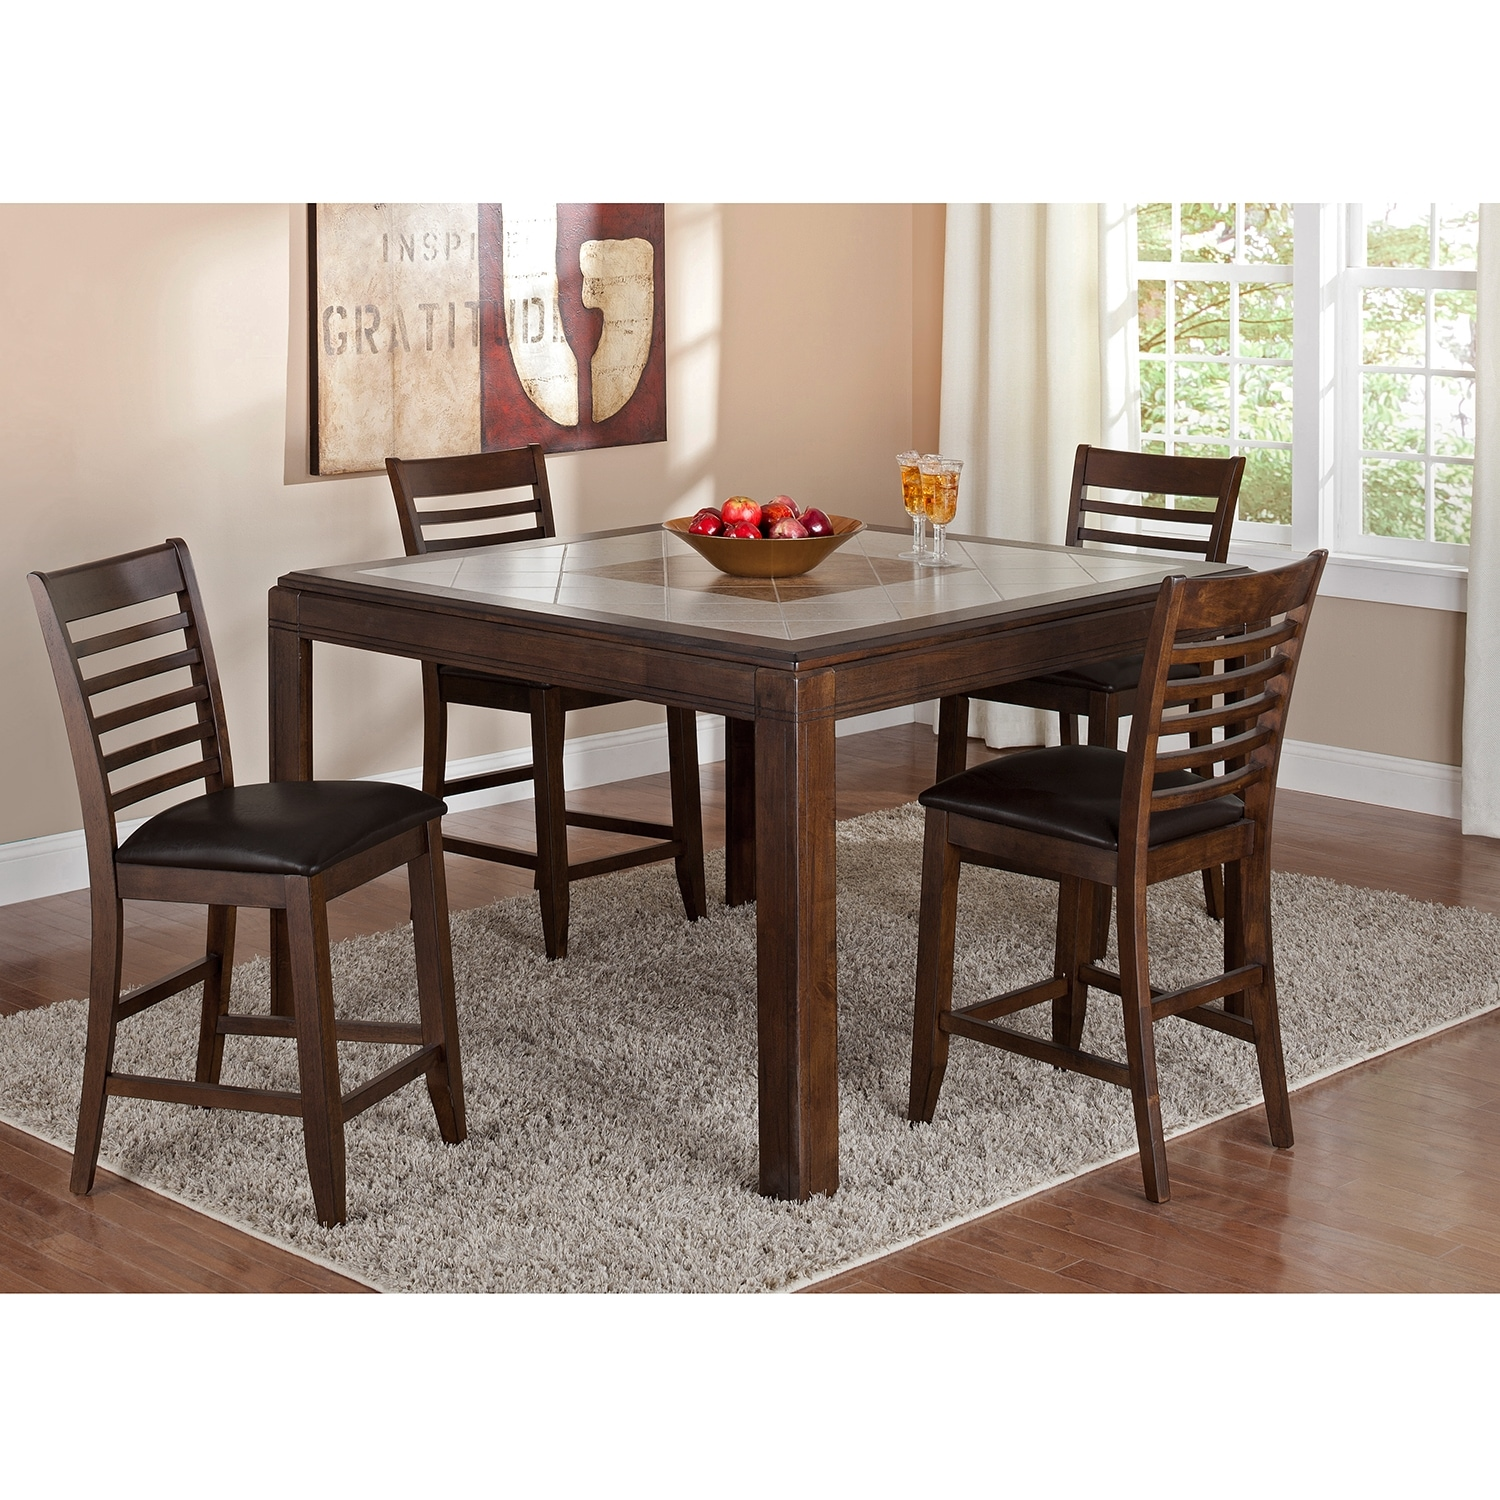 Deer Creek II Dining Room Counter Height Table Value City Furniture